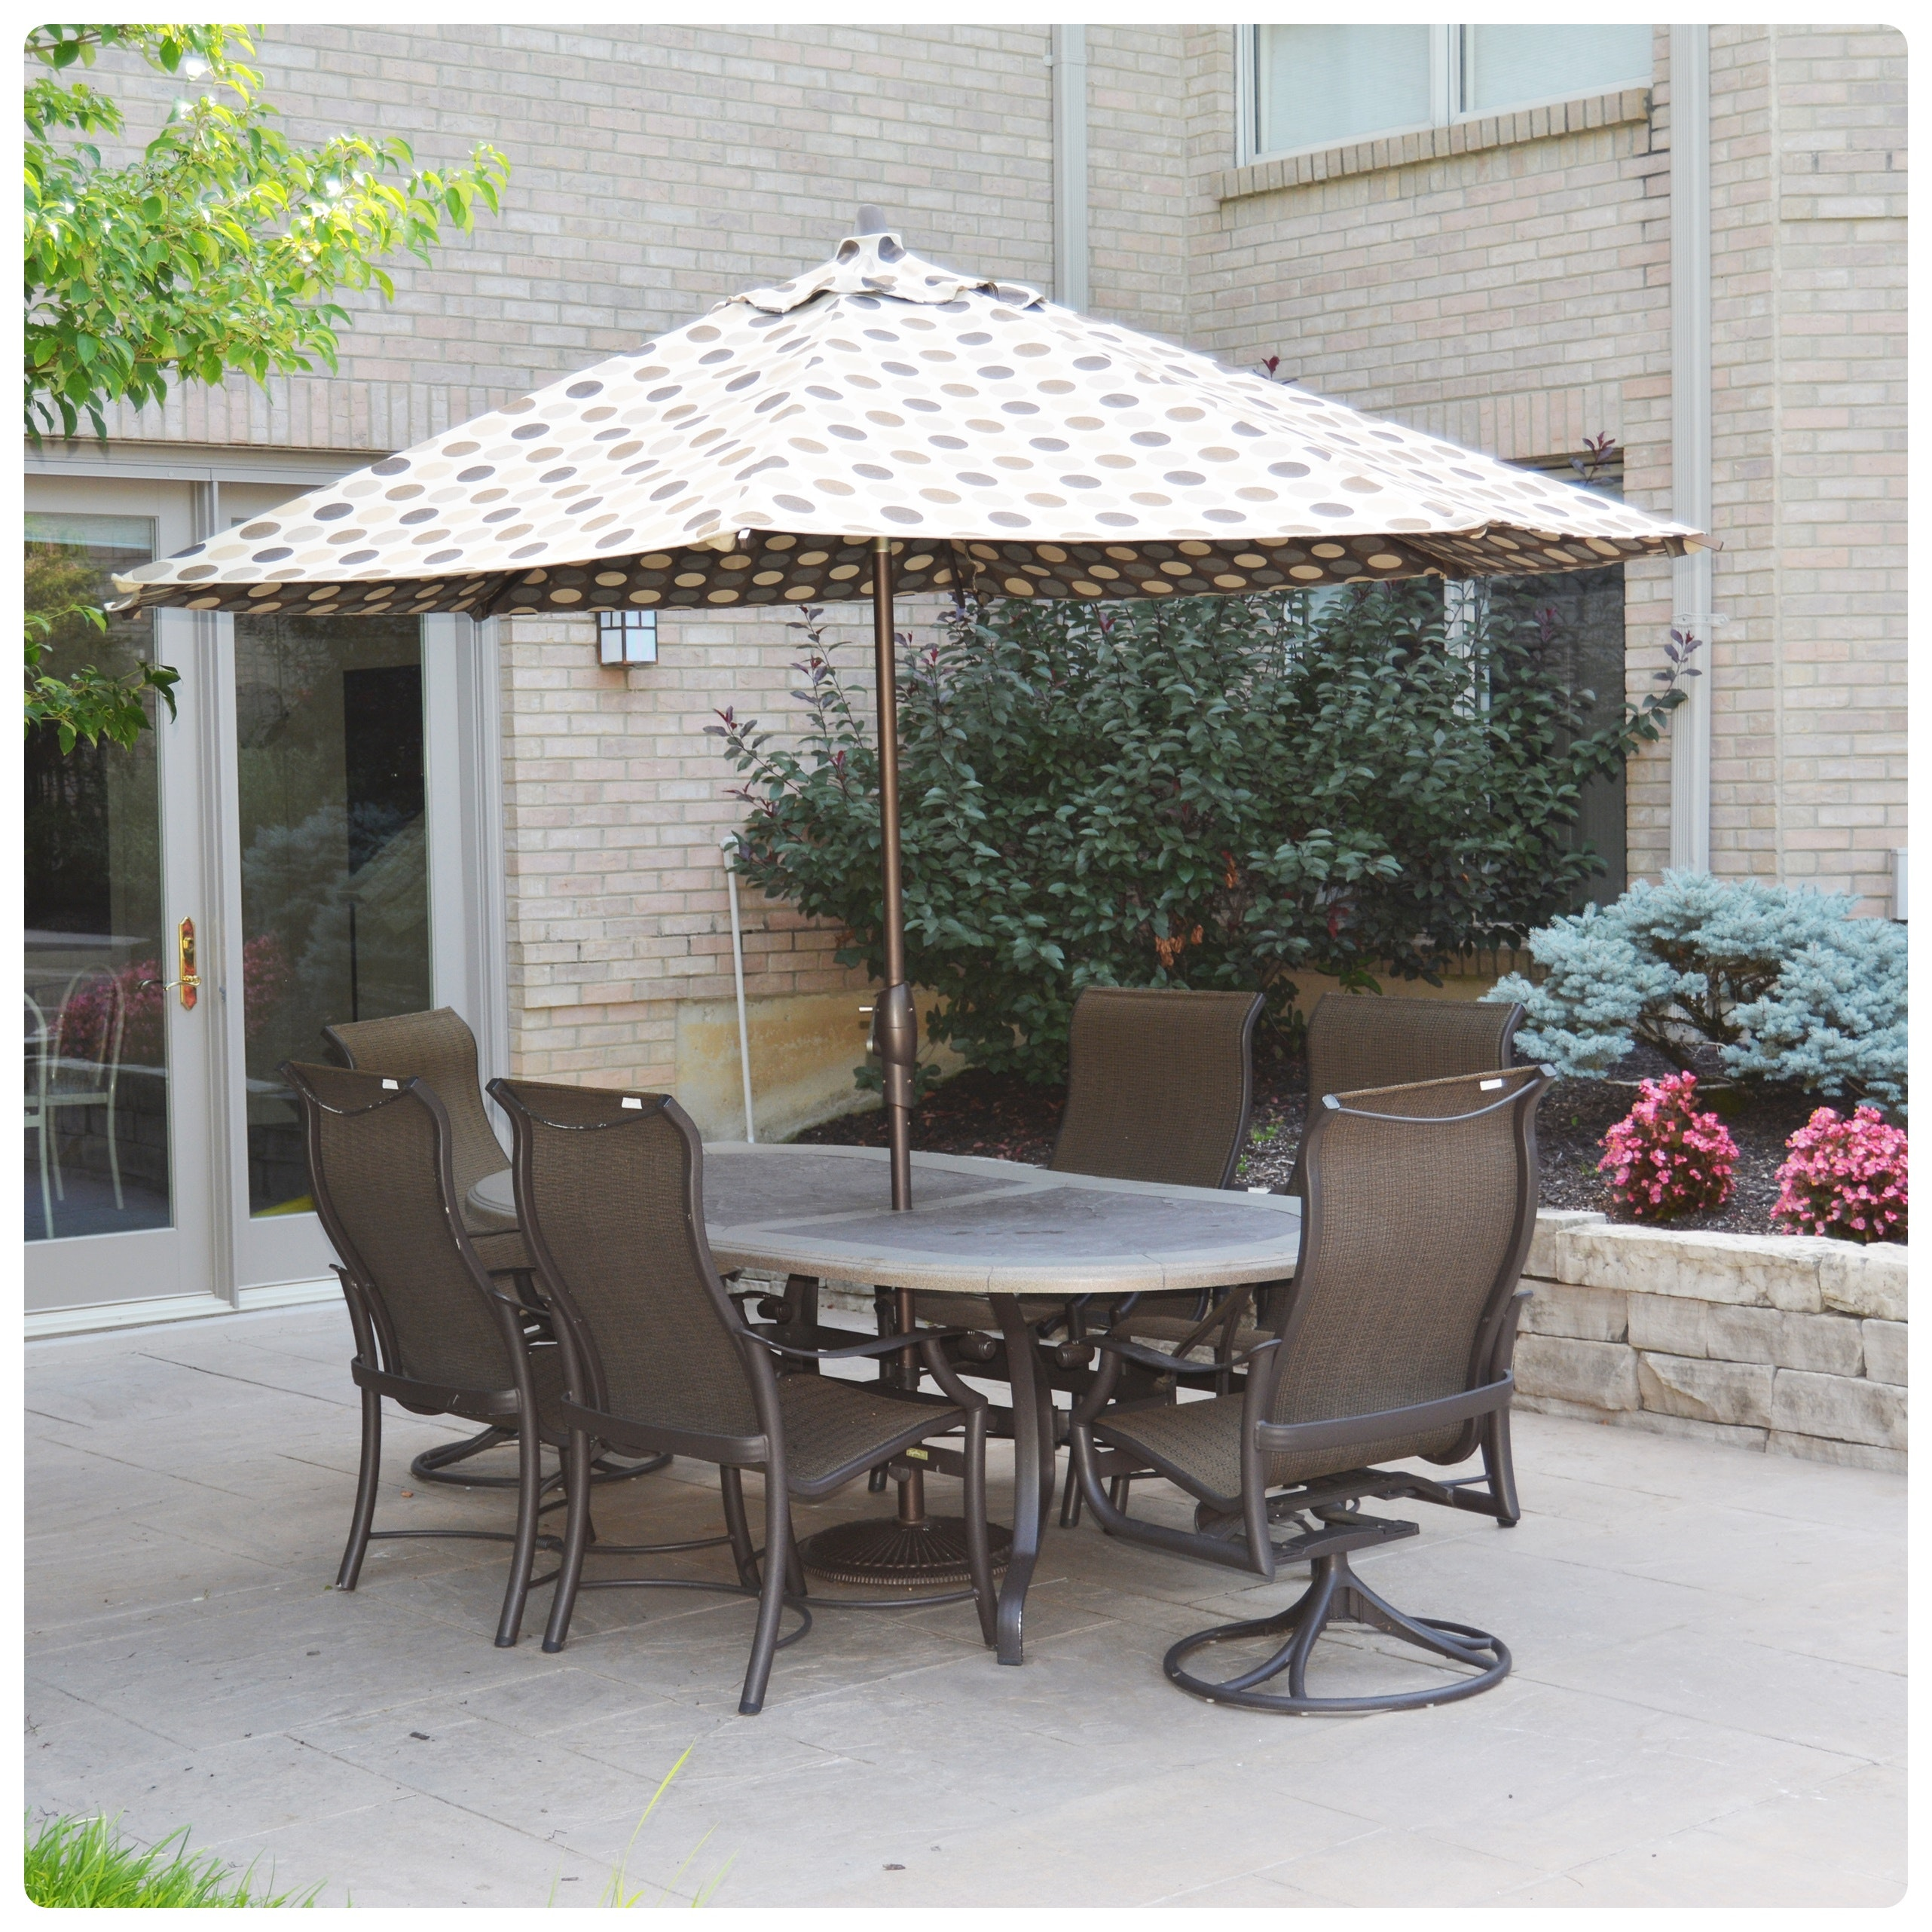 Tropitone Oval Patio Table and Chairs With Frontgate Umbrella